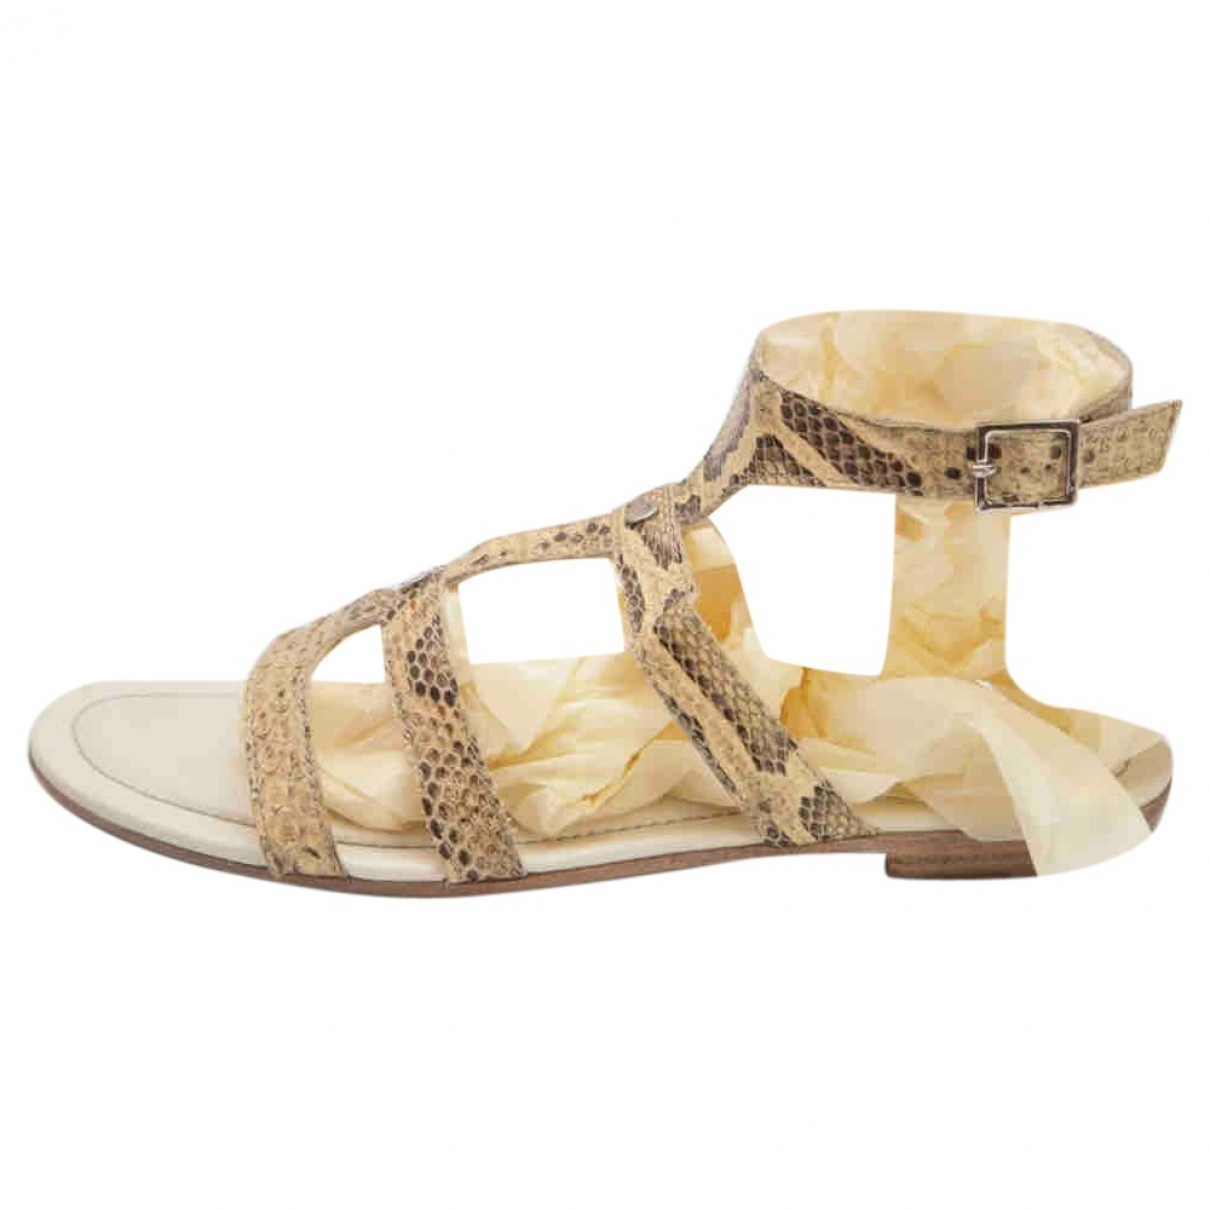 Tod's \N Beige Leather Sandals for Women 38.5 EU